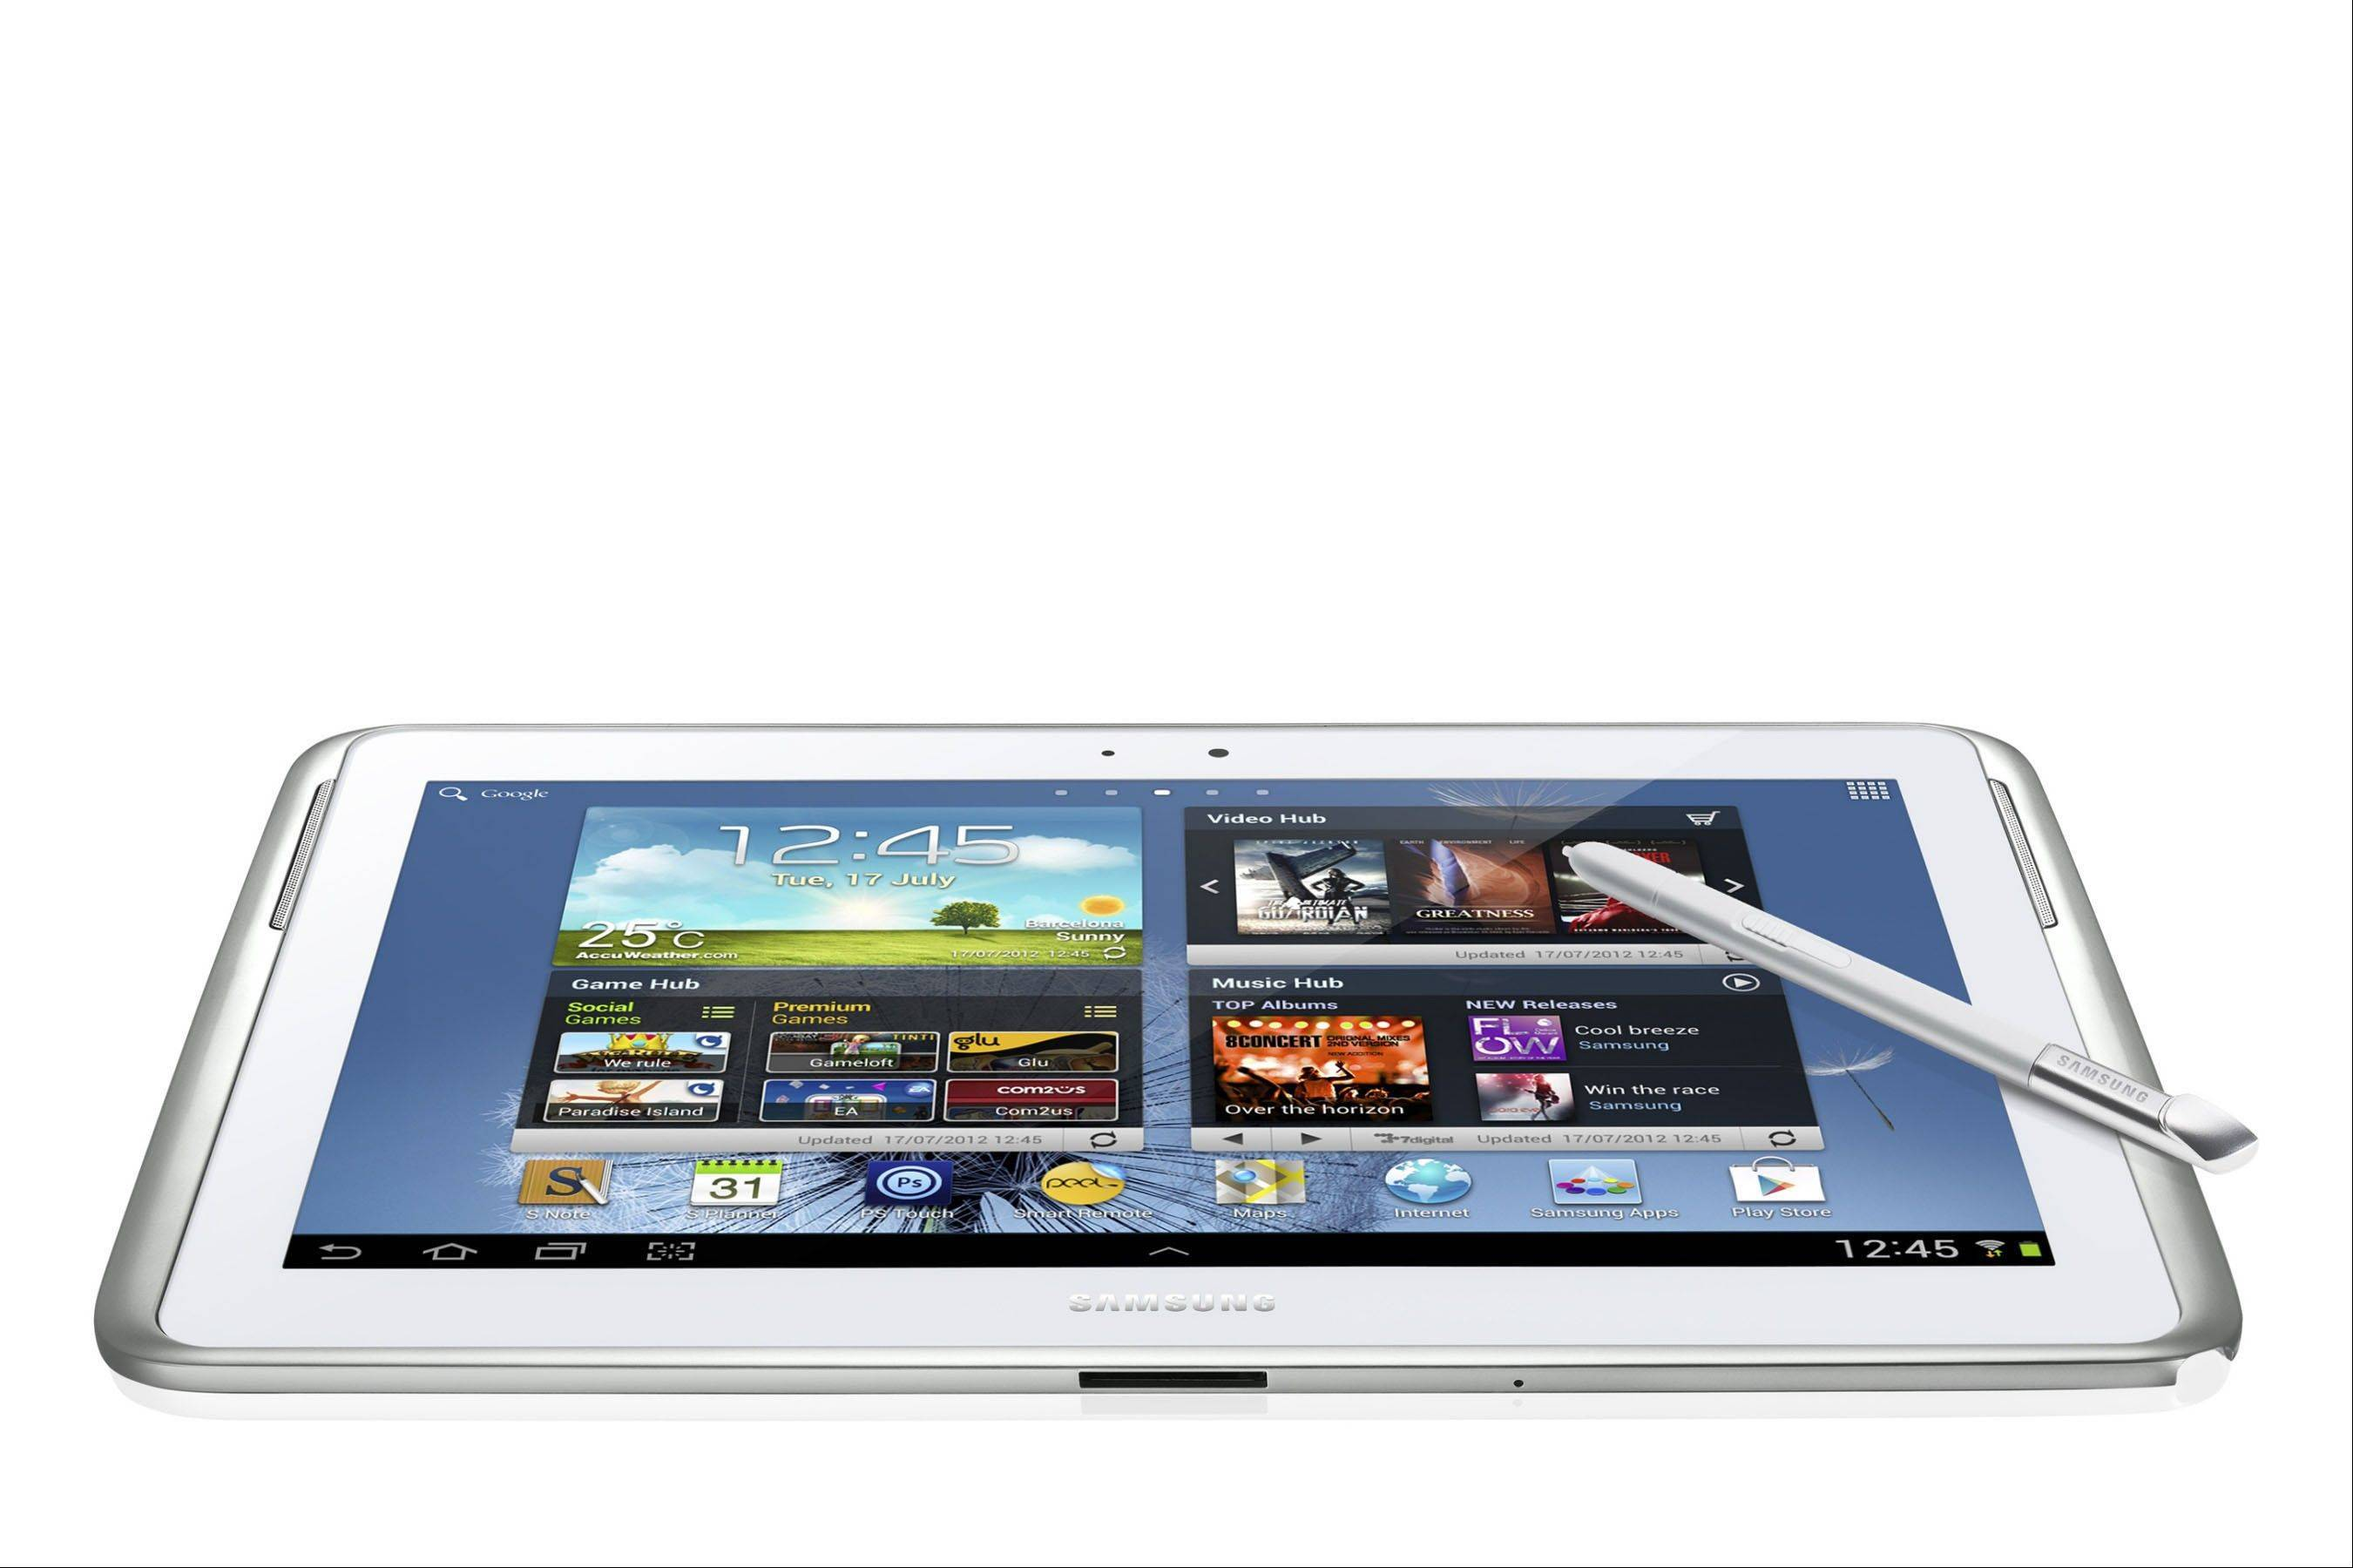 The Galaxy Note 10.1 is for the creative type. It�s the only tablet in our roundup that comes with a �pen� that can be used to write and draw on the screen.